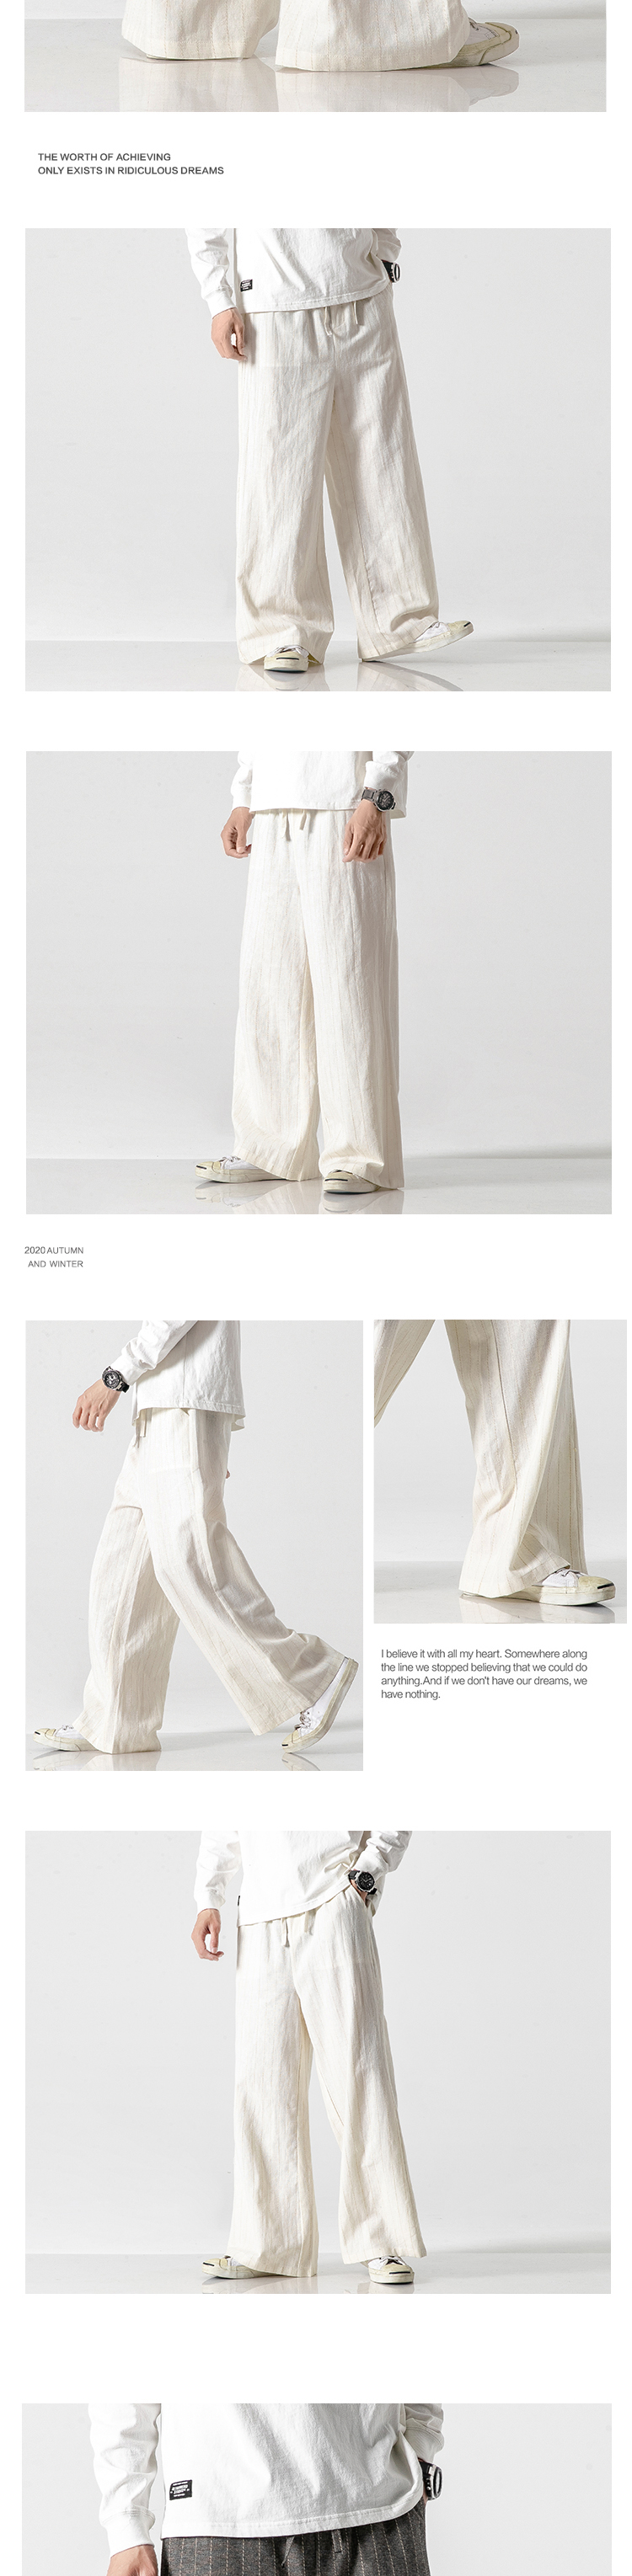 Sinicism Store Men Striped Chinese Style Wide Leg Pants Mens 2020 Japan Style Loose Trousers Male Oversize Vintage Casual Pants 30